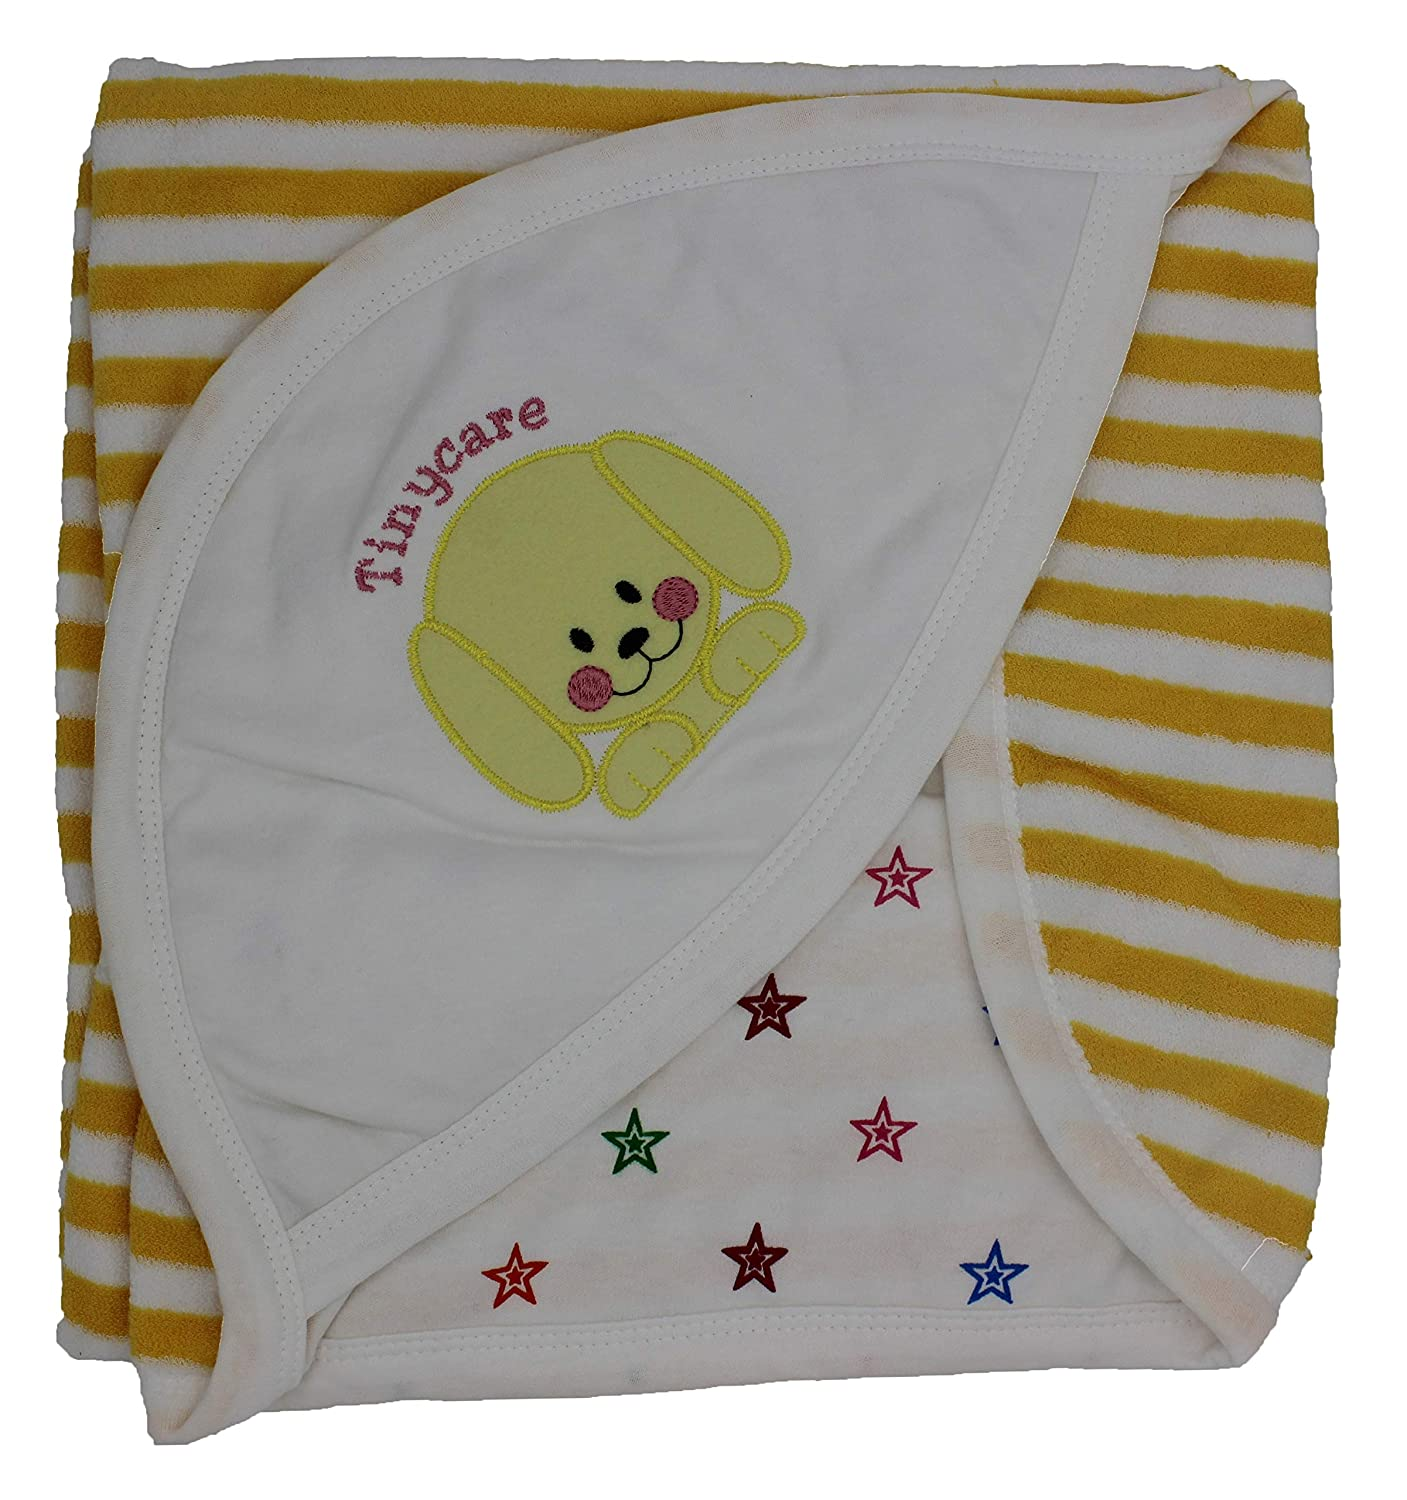 Tinycare Newborn Baby Hooded Color Printed Baby Bath Towel (Yellow)